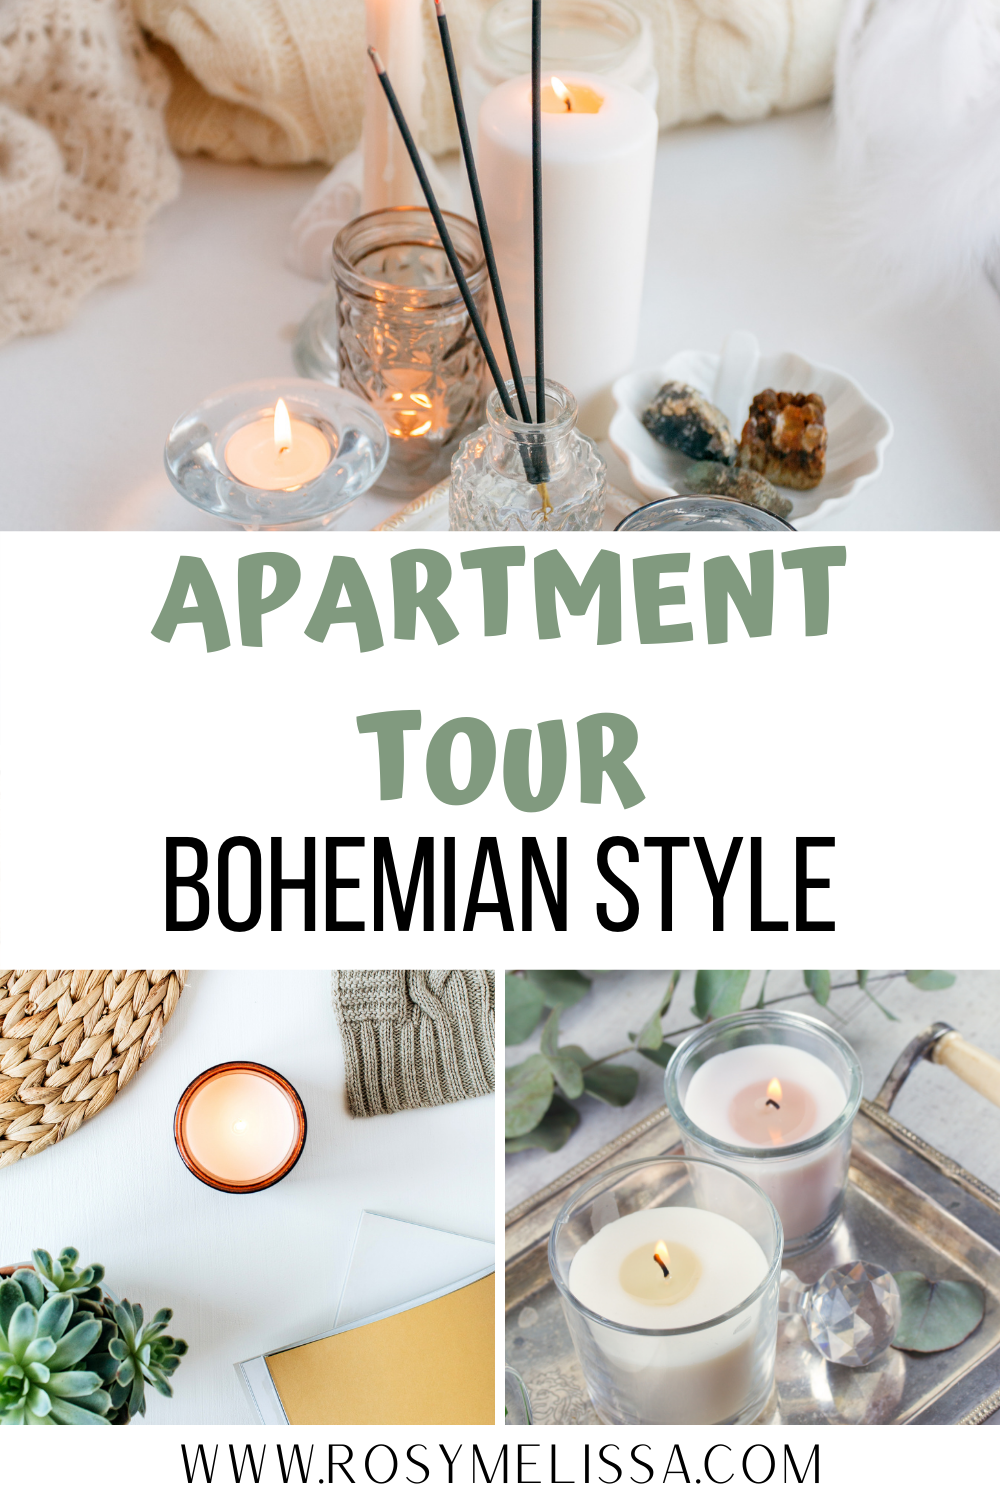 apartment tour in bohemian style, home decor, inspiration